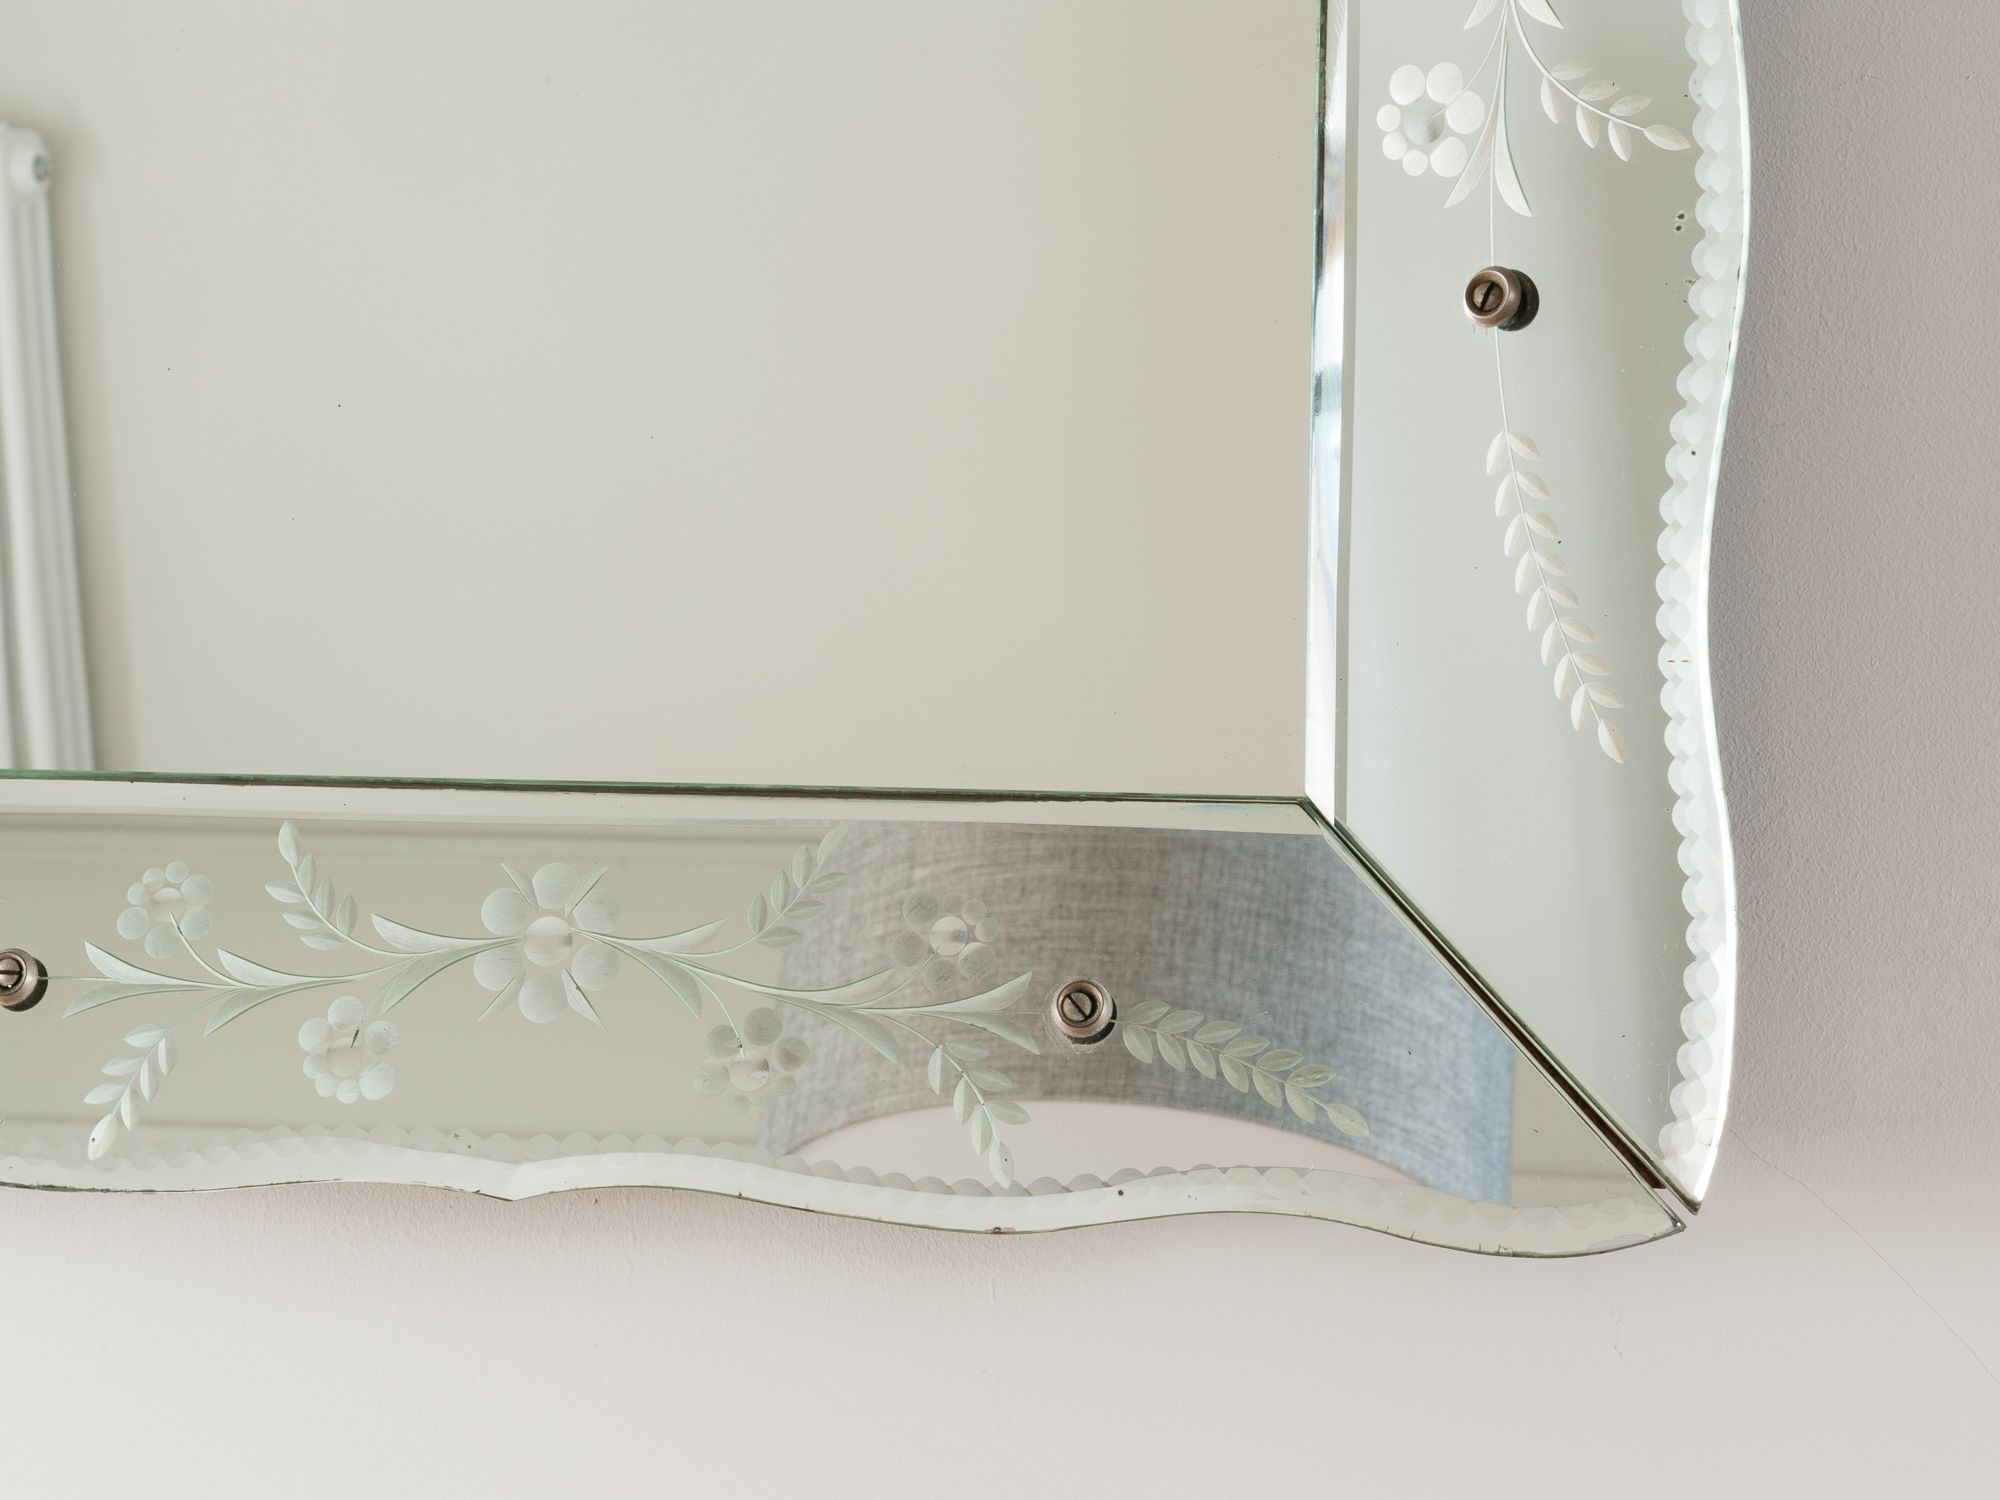 Vintage French Bevelled Edge Mirror Retro Living London Uk With Regard To Vintage Bevelled Edge Mirror (Image 13 of 15)